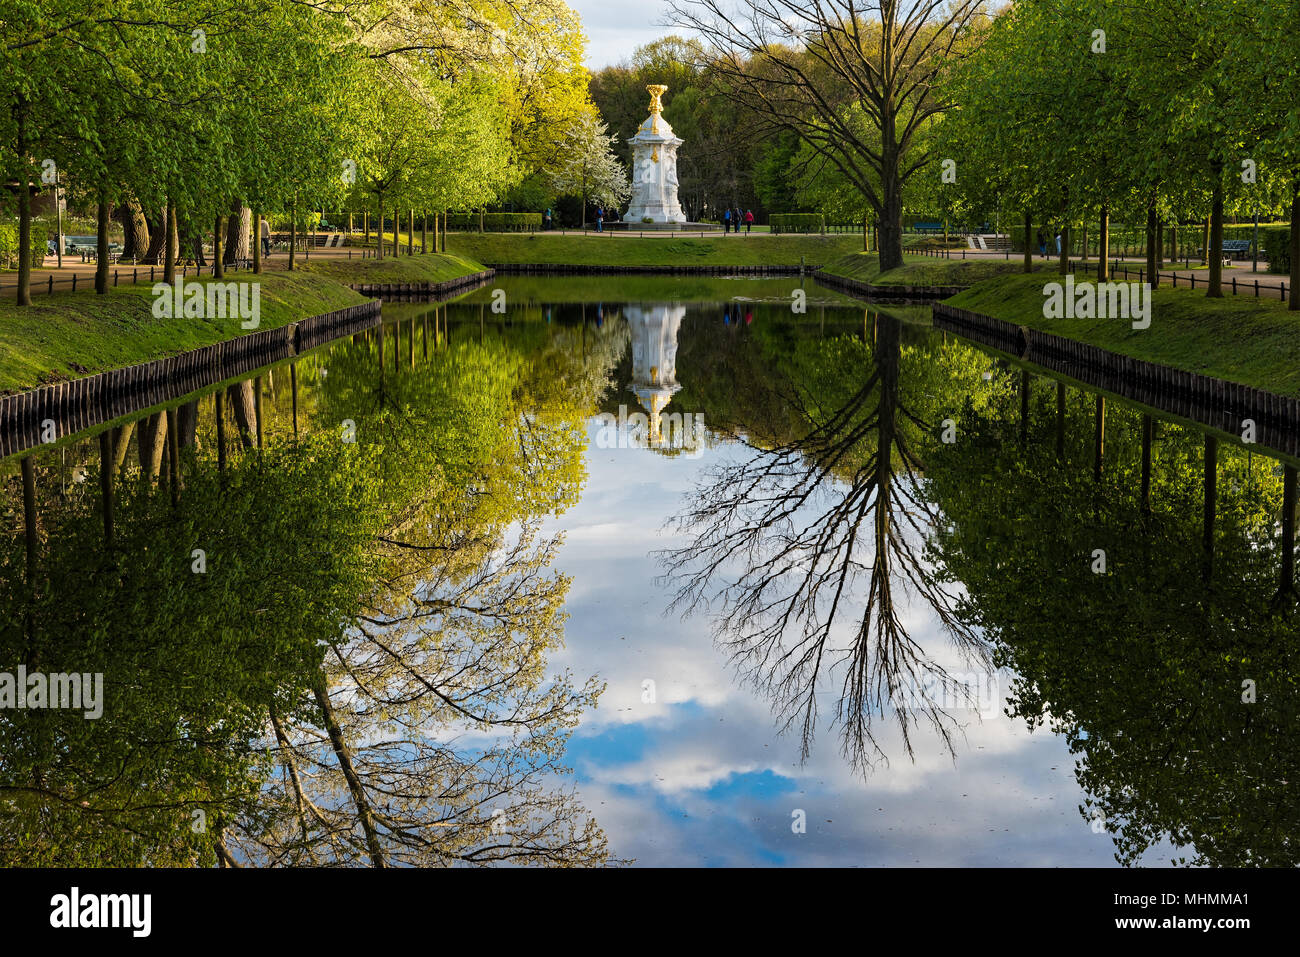 View of the Steppengarten Park with the Beethoven-Haydn-Mozart Memorial in Berlin, Germany - Stock Image